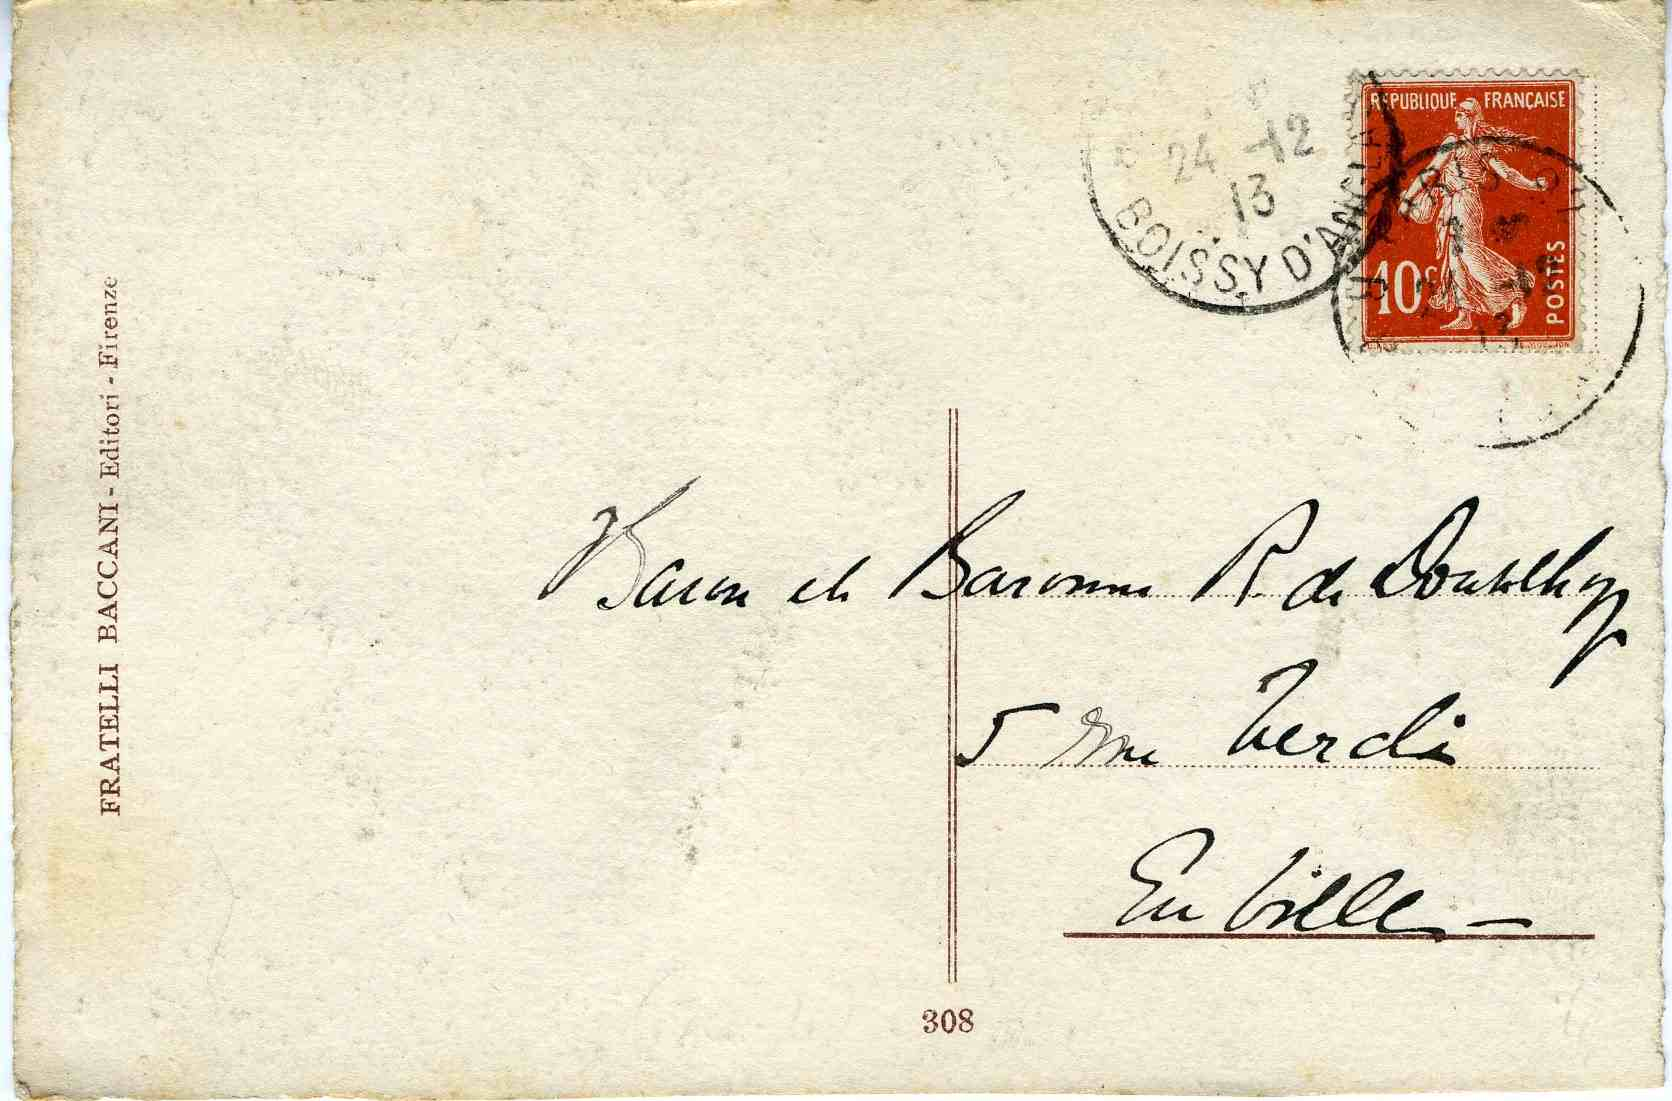 Postal details of Minna Rider's card, 1913